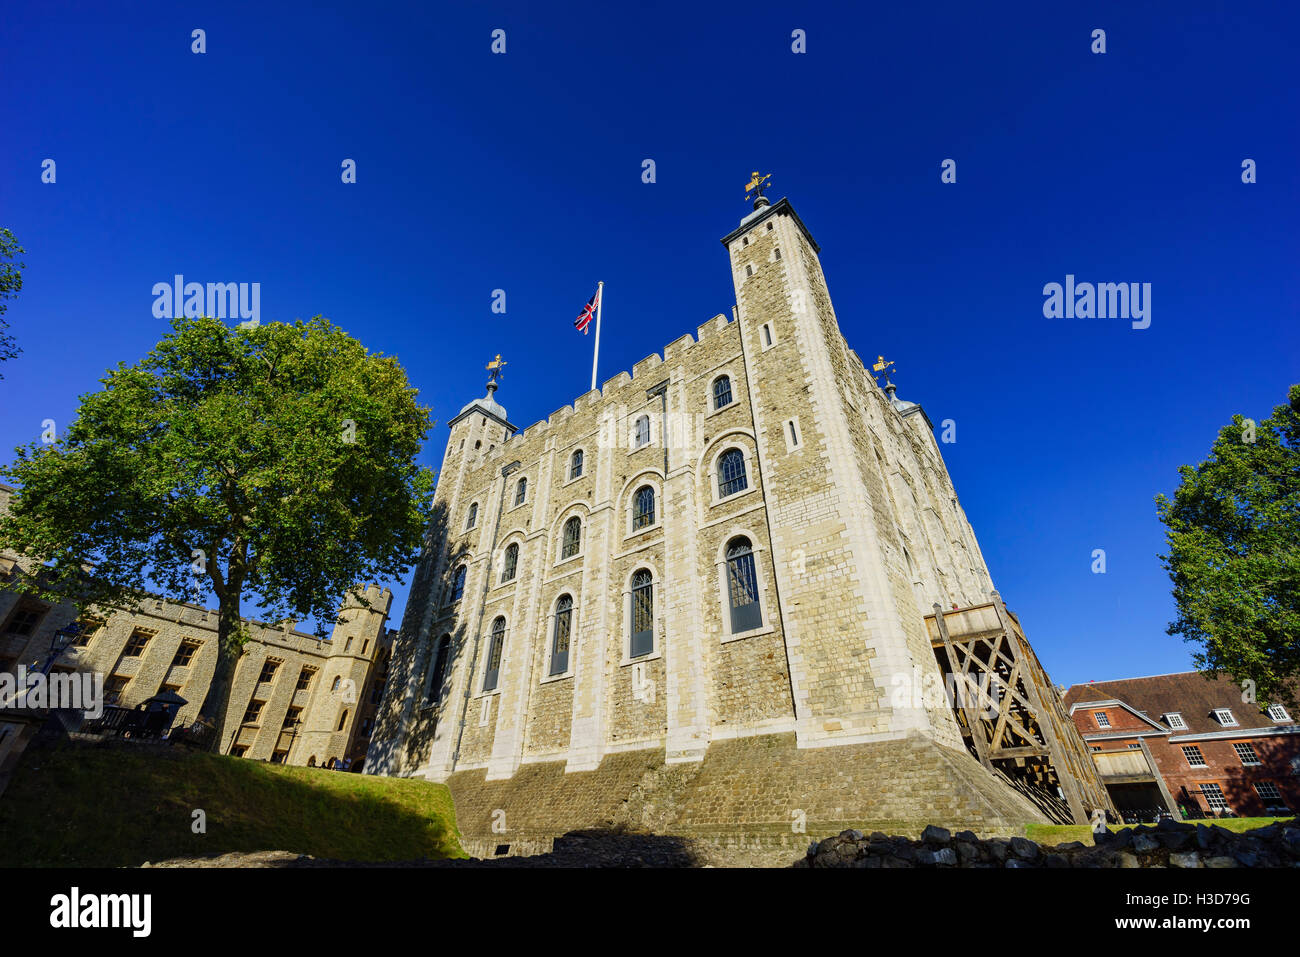 London, SEP 11: The historical and beautiful Tower of London on SEP 11, 2016 at London, United Kingdom - Stock Image